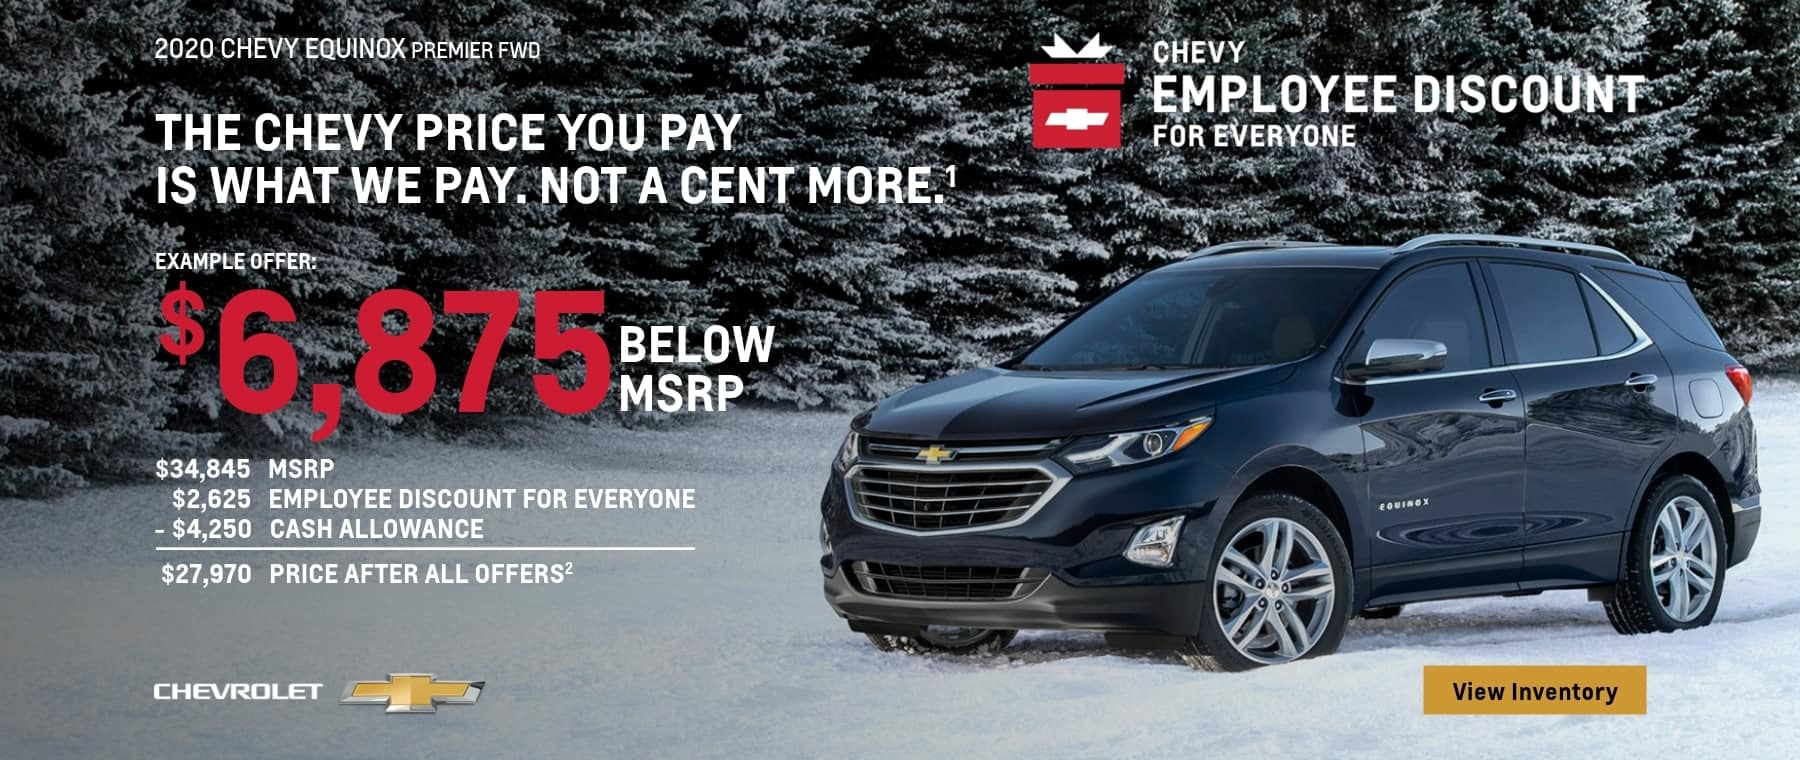 The Chevy Employee Discount For Everyone. The Chevy Price you pay is what we pay. Not a cent more. $6,875 Below MSRP on this 2020 Equinox Premier FWD.